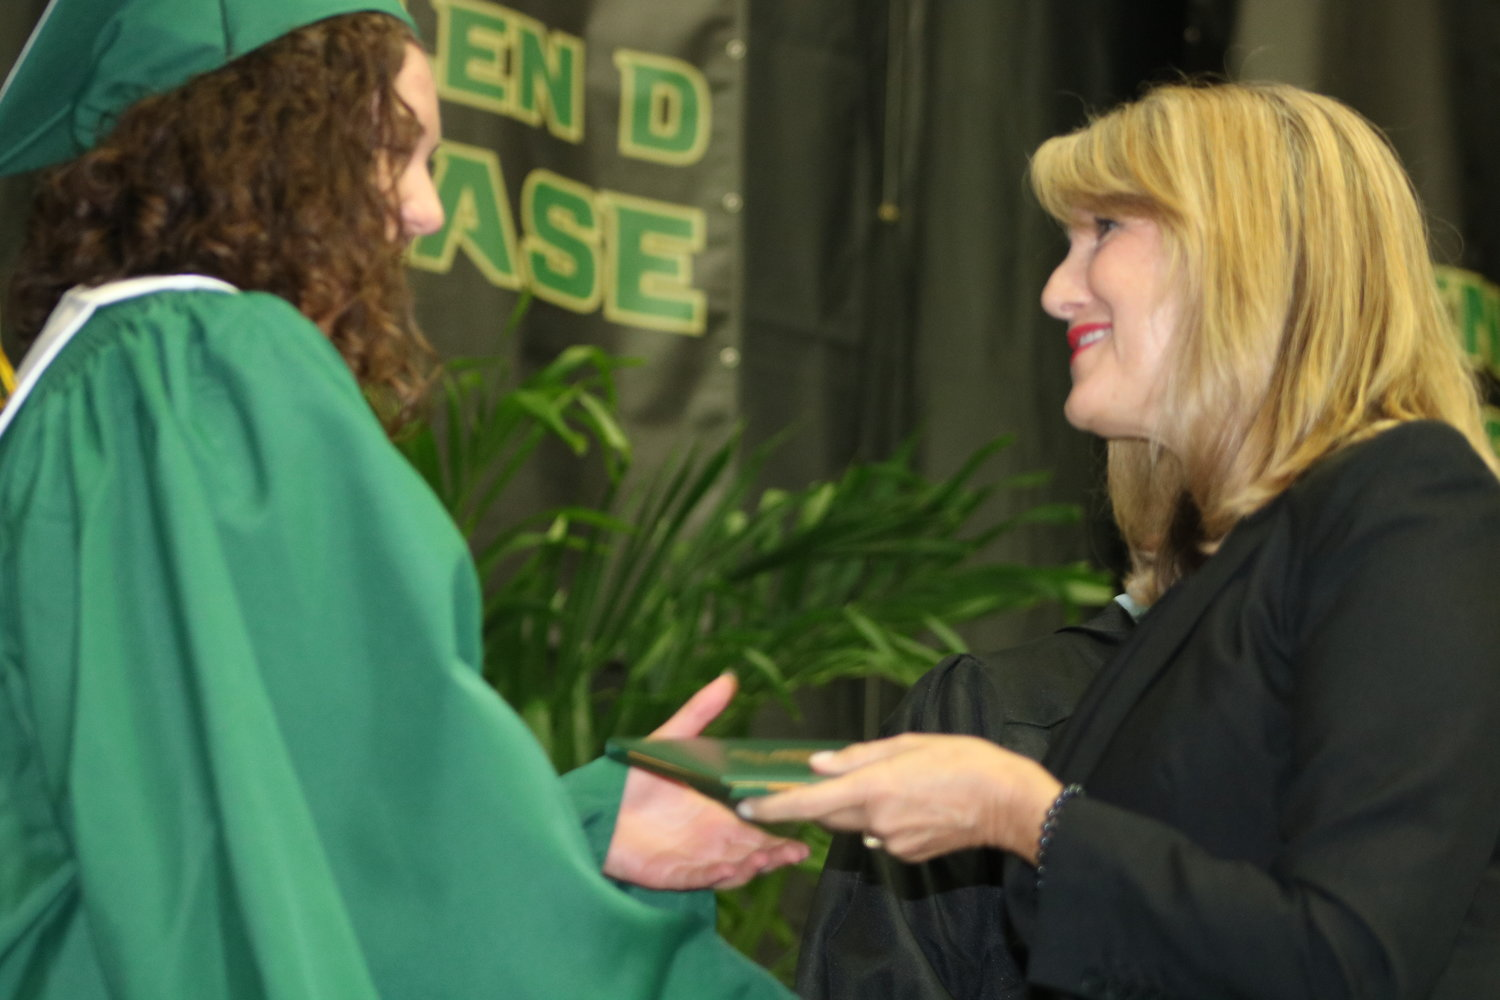 St. Johns County School Board Chair and District 4 Representative Kelly Barrera presents a Nease graduate with her diploma.